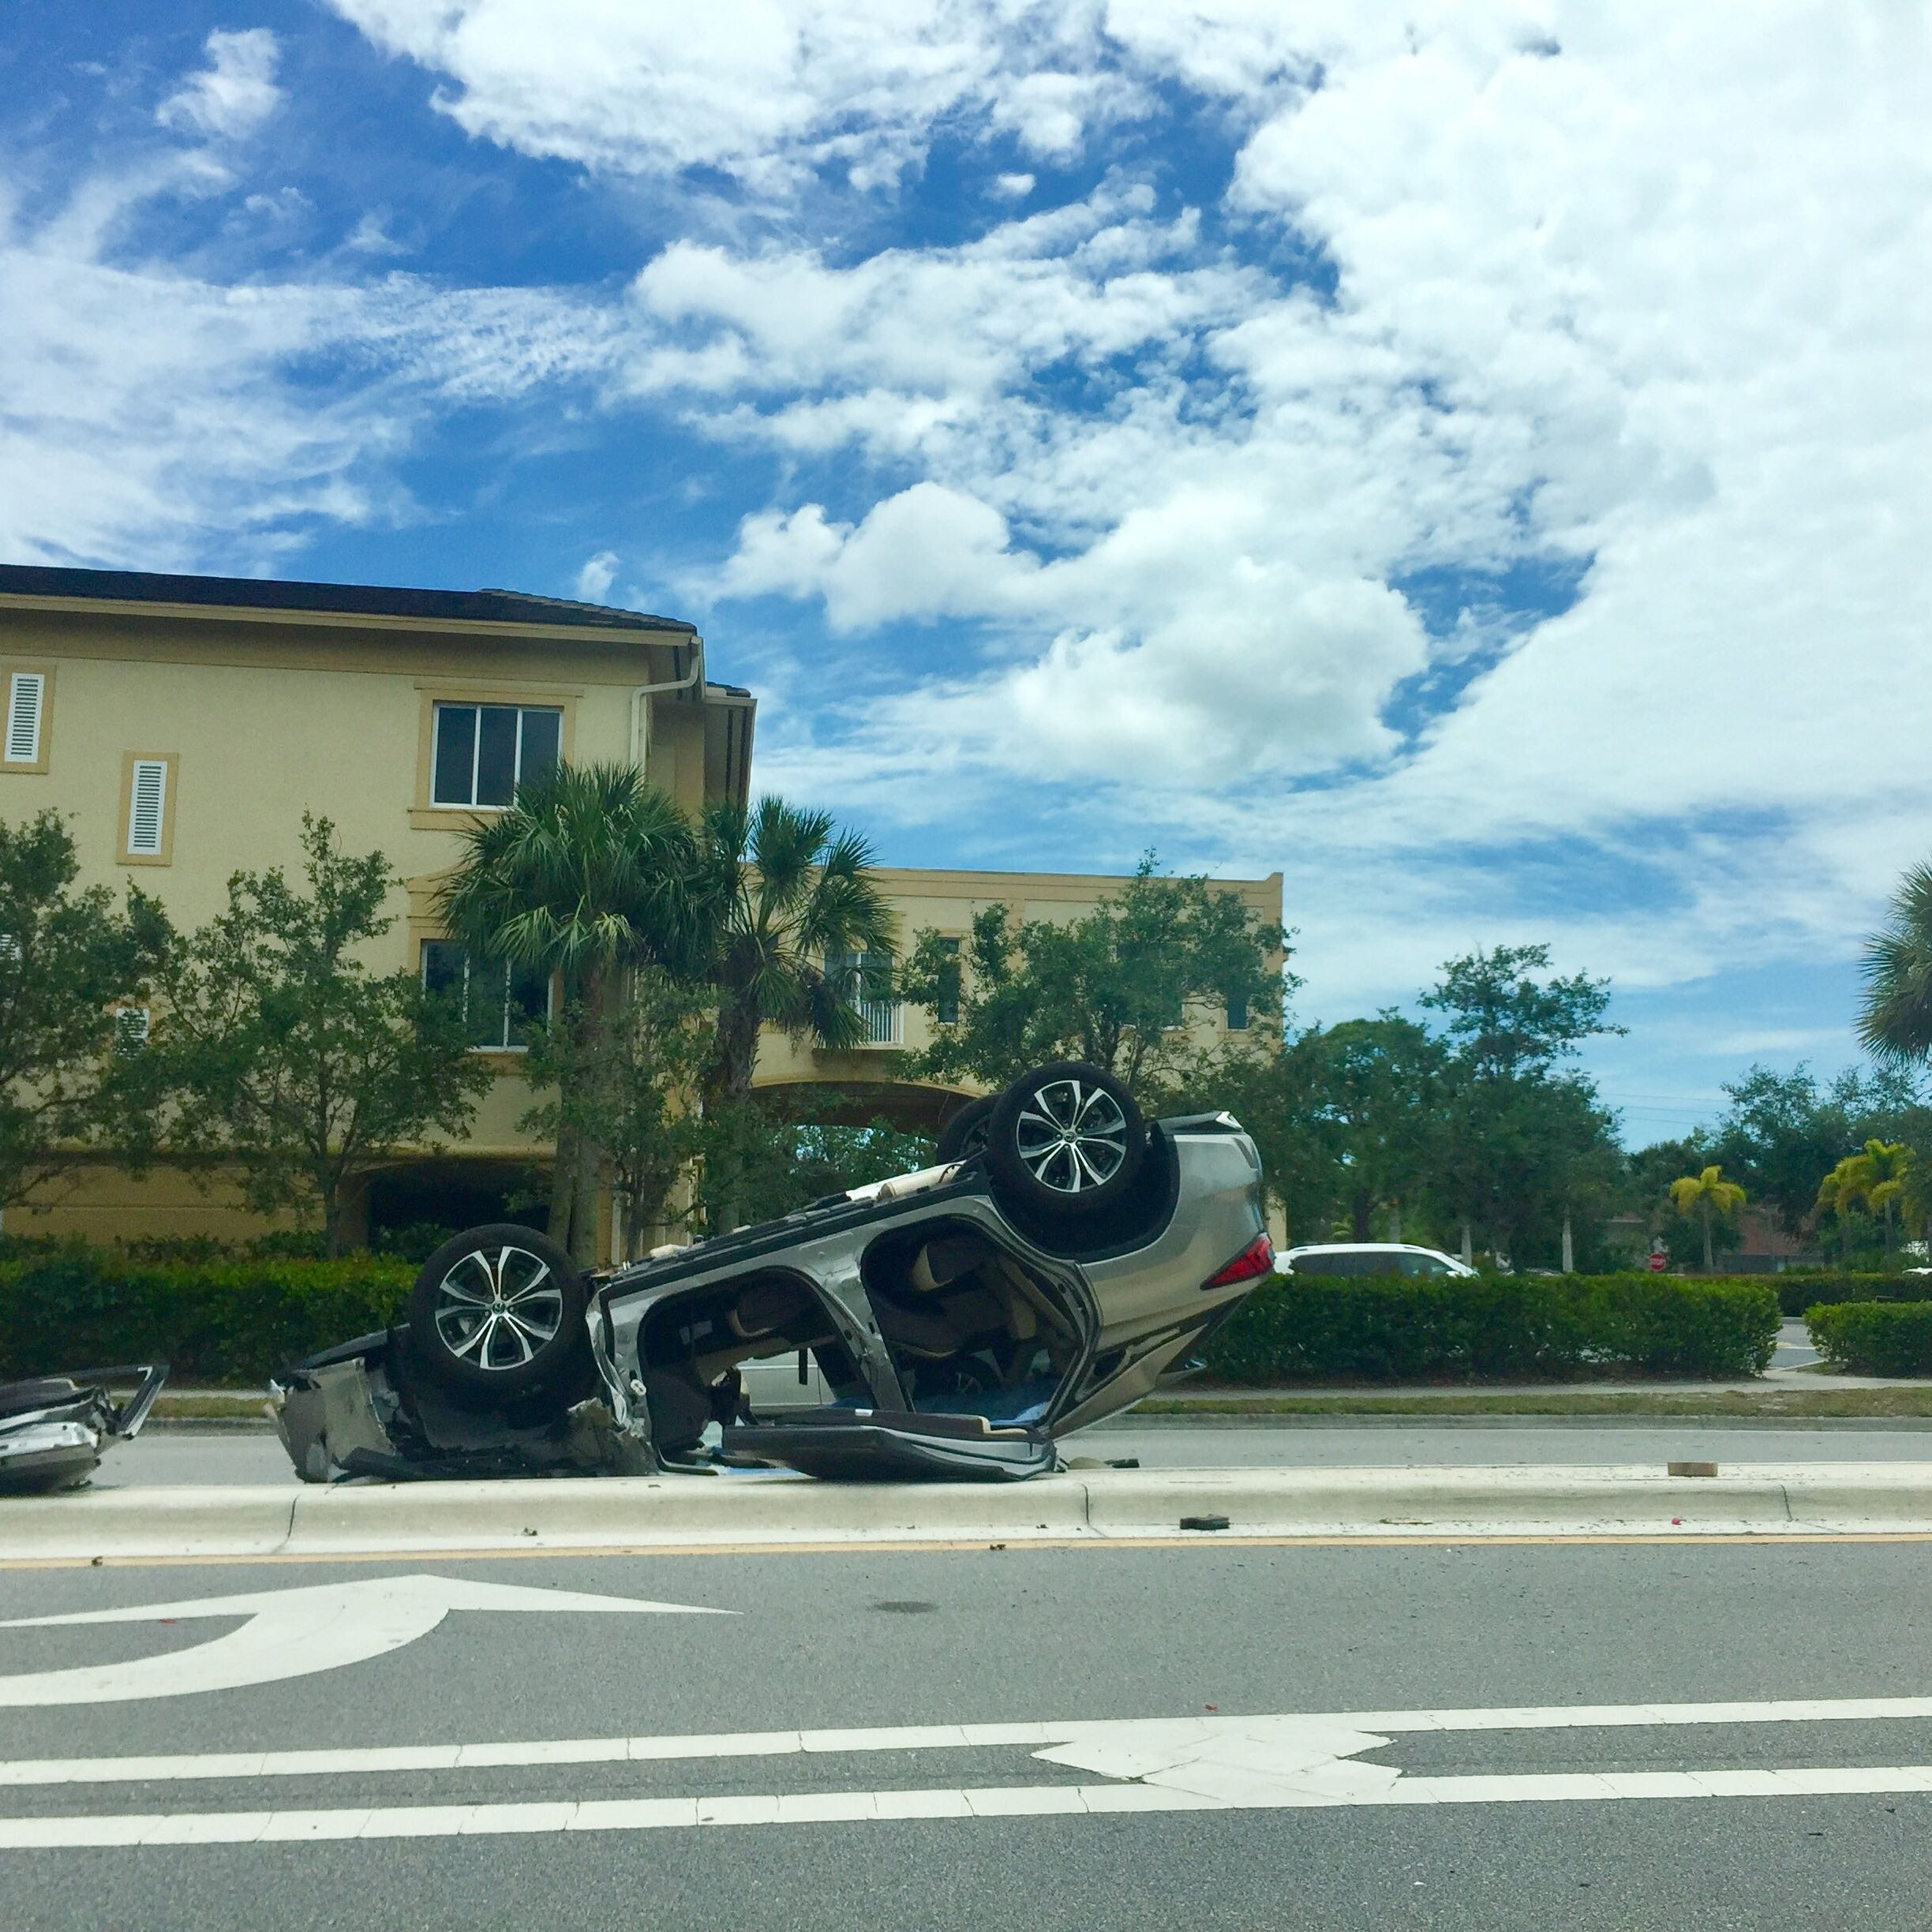 Cleared: Roadblock on eastbound Pine Ridge Road near U.S. 41 after crash with injuries